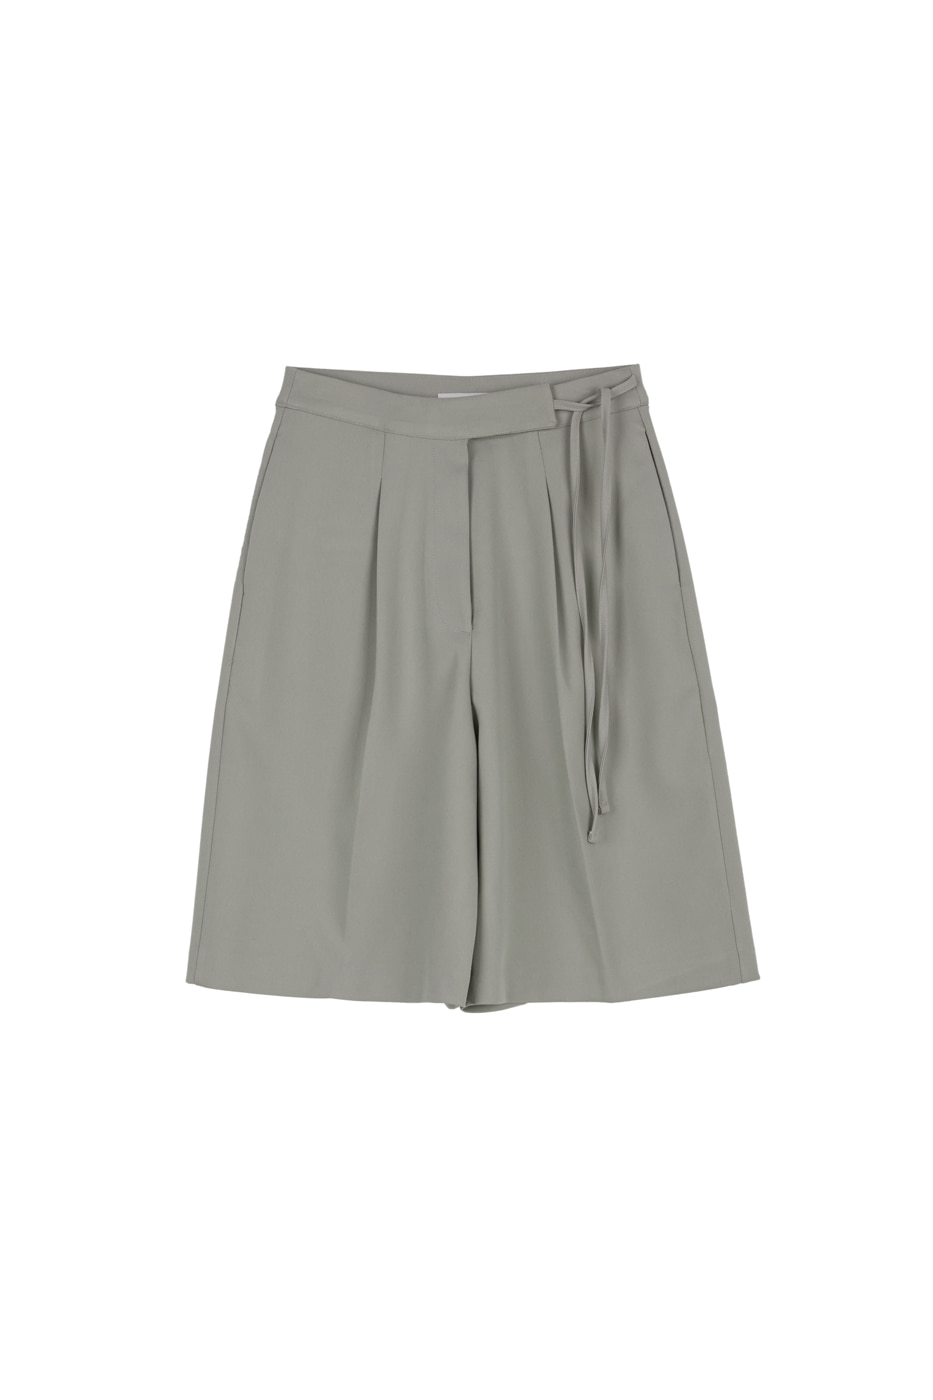 Belted tailored half shorts